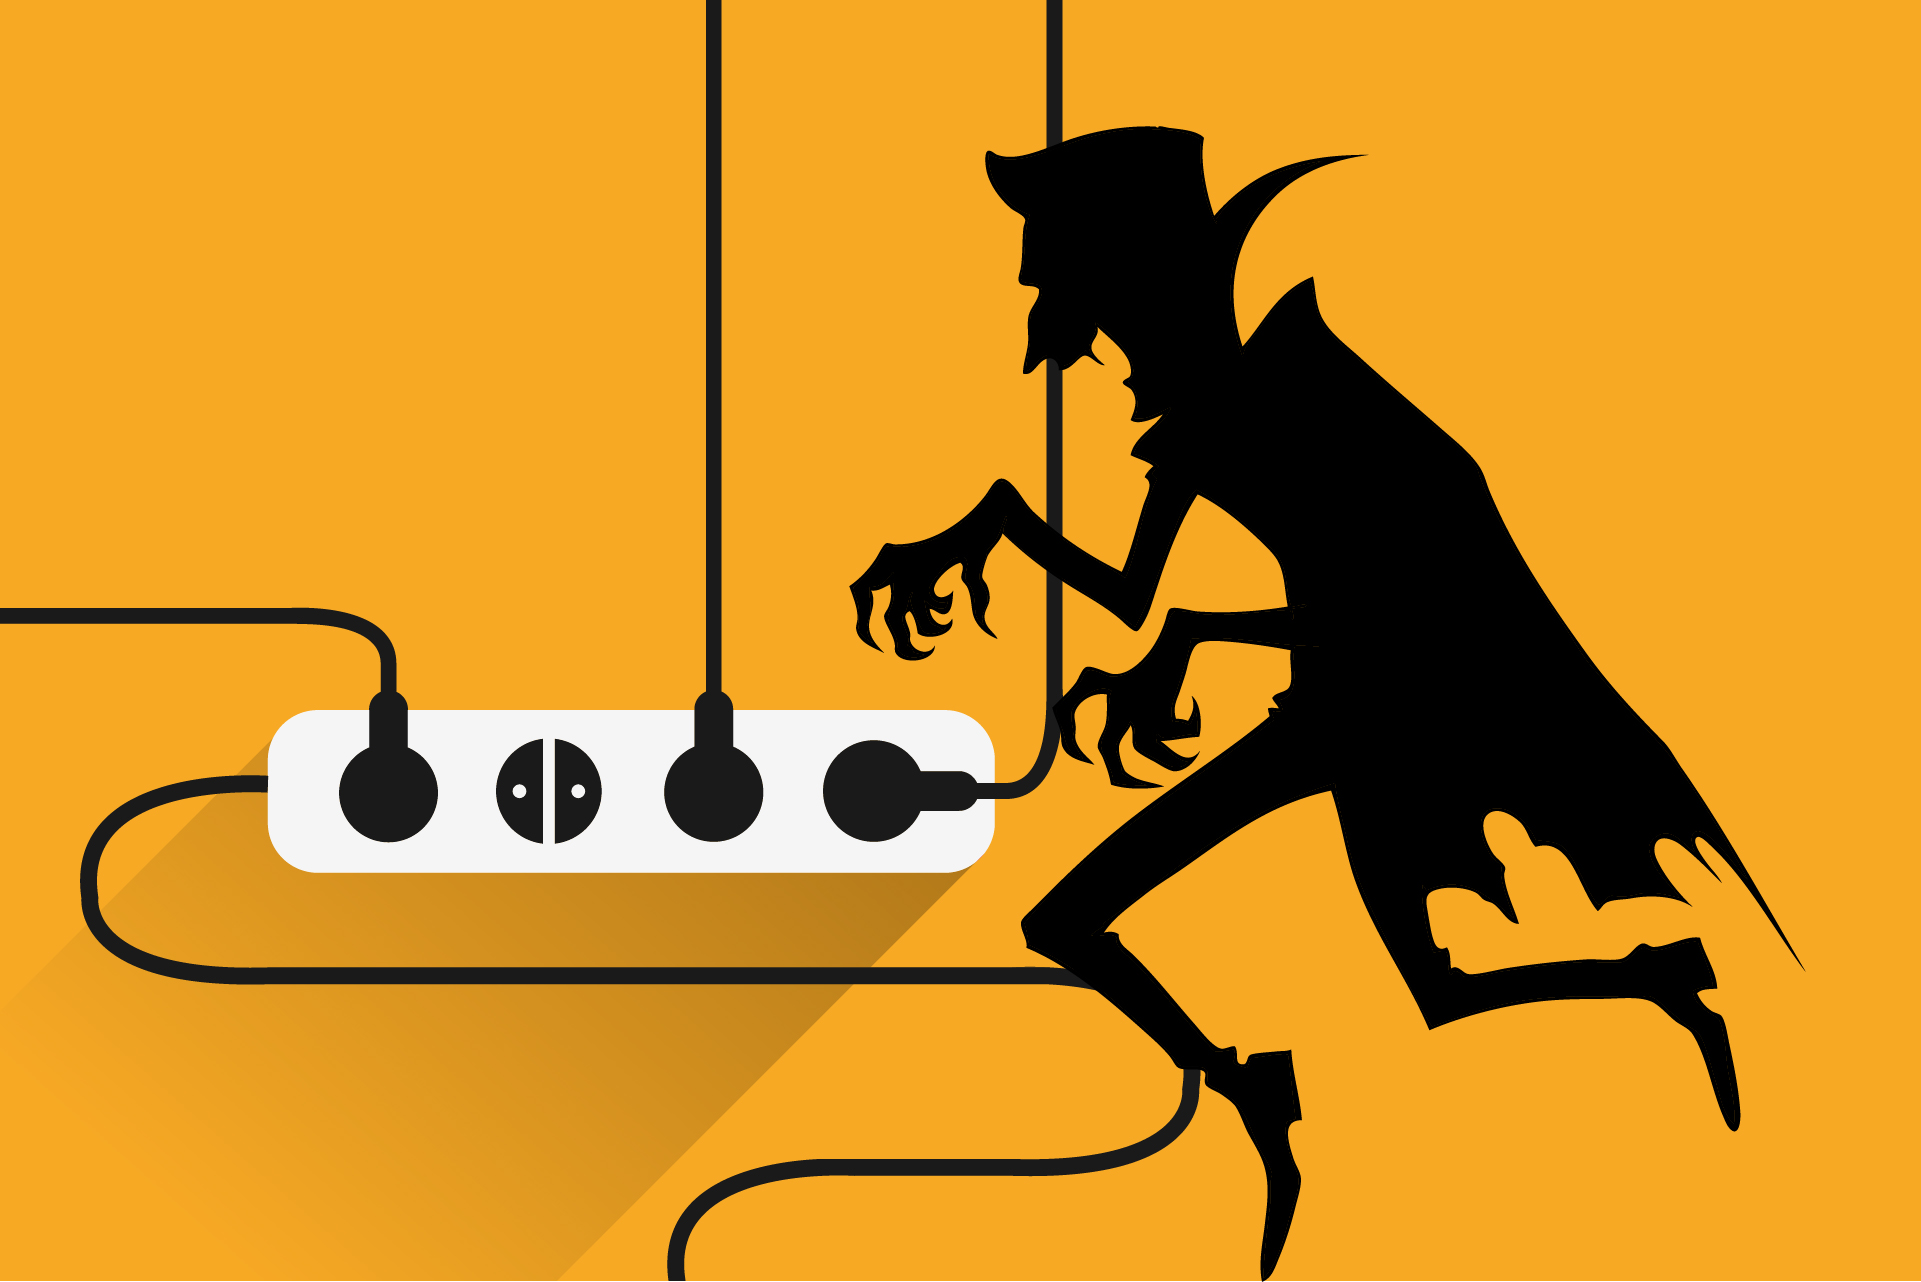 Vampire Power, learn how to stop is increasing your power bills with Power Compare!